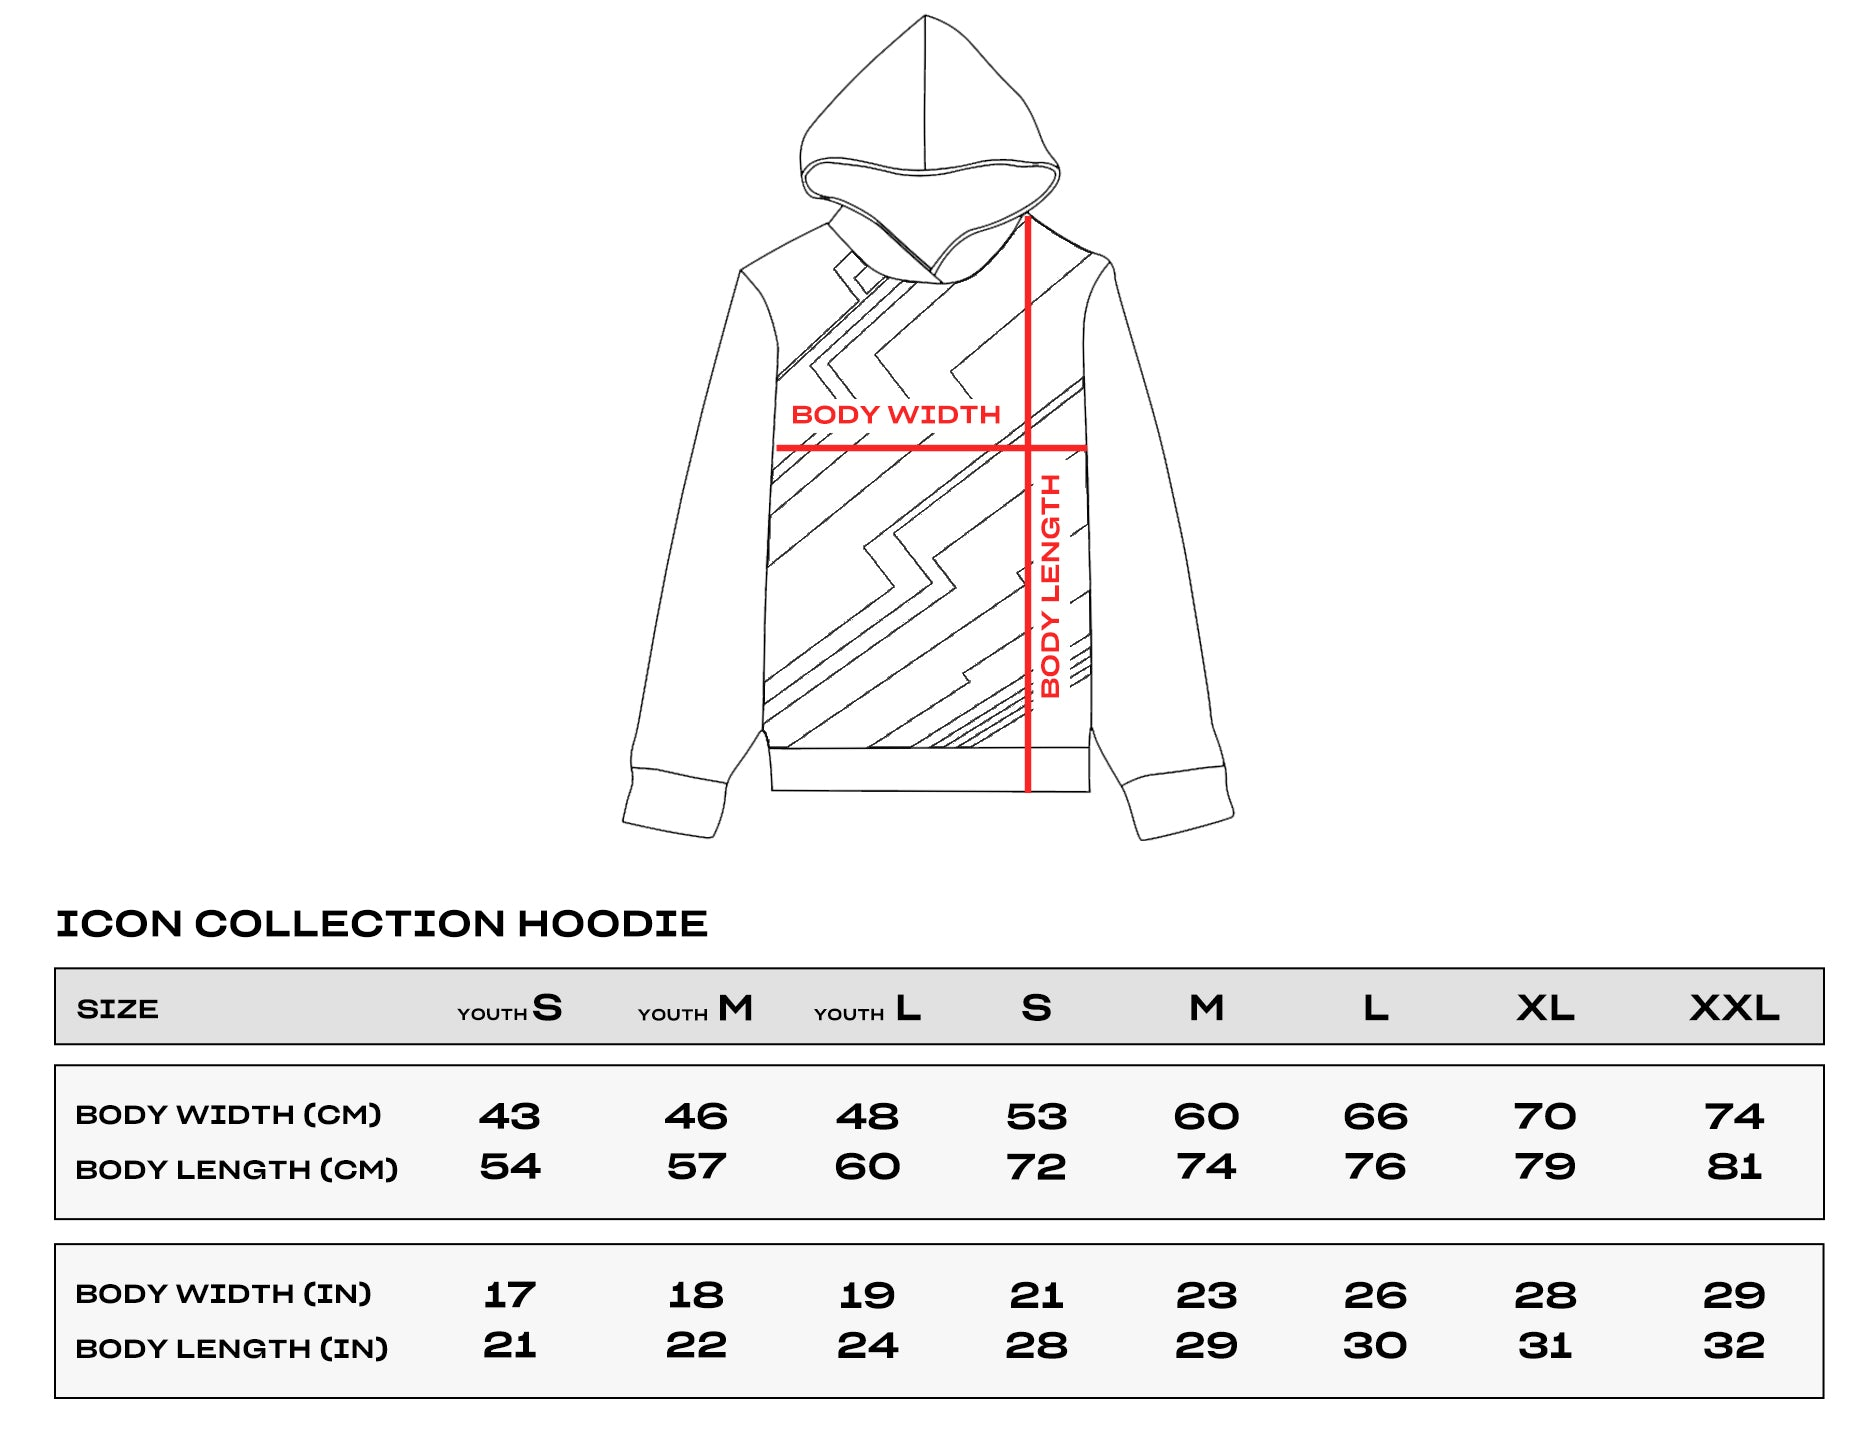 Icon Collection Hoodie Size Chart